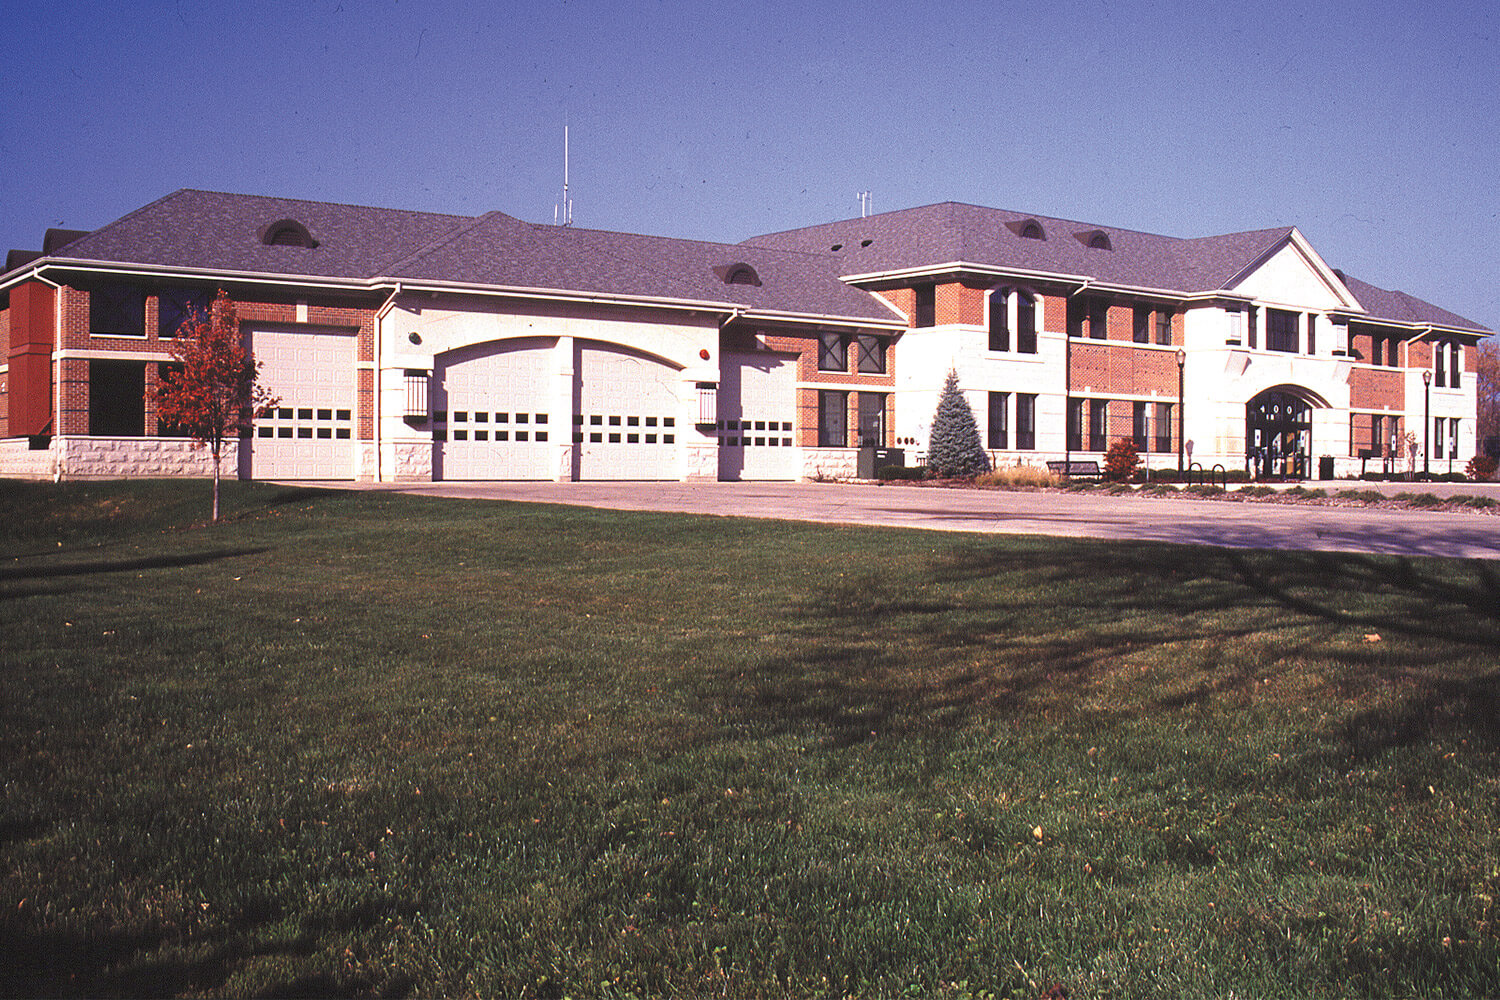 Barrington Public Safety Police and Fire Headquarters exterior 2